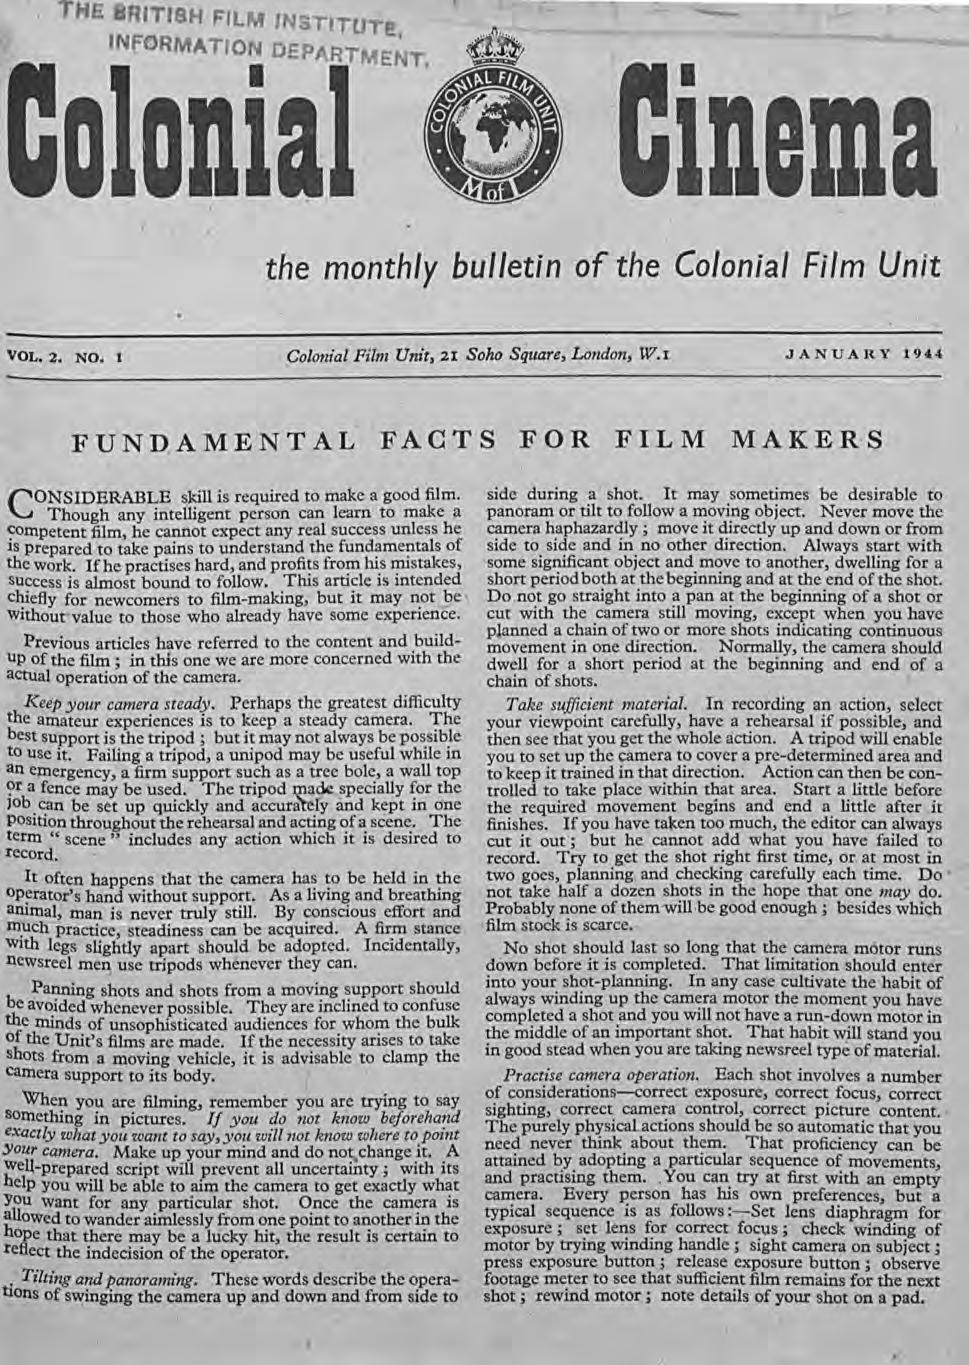 / - I.Dema the monthly bulletin of the Colonial Film Unit VOL. 2. NO. 1 Colonial Film Unit, 21 Soho Square, London, W.I JANUARY 194,4 FUND.